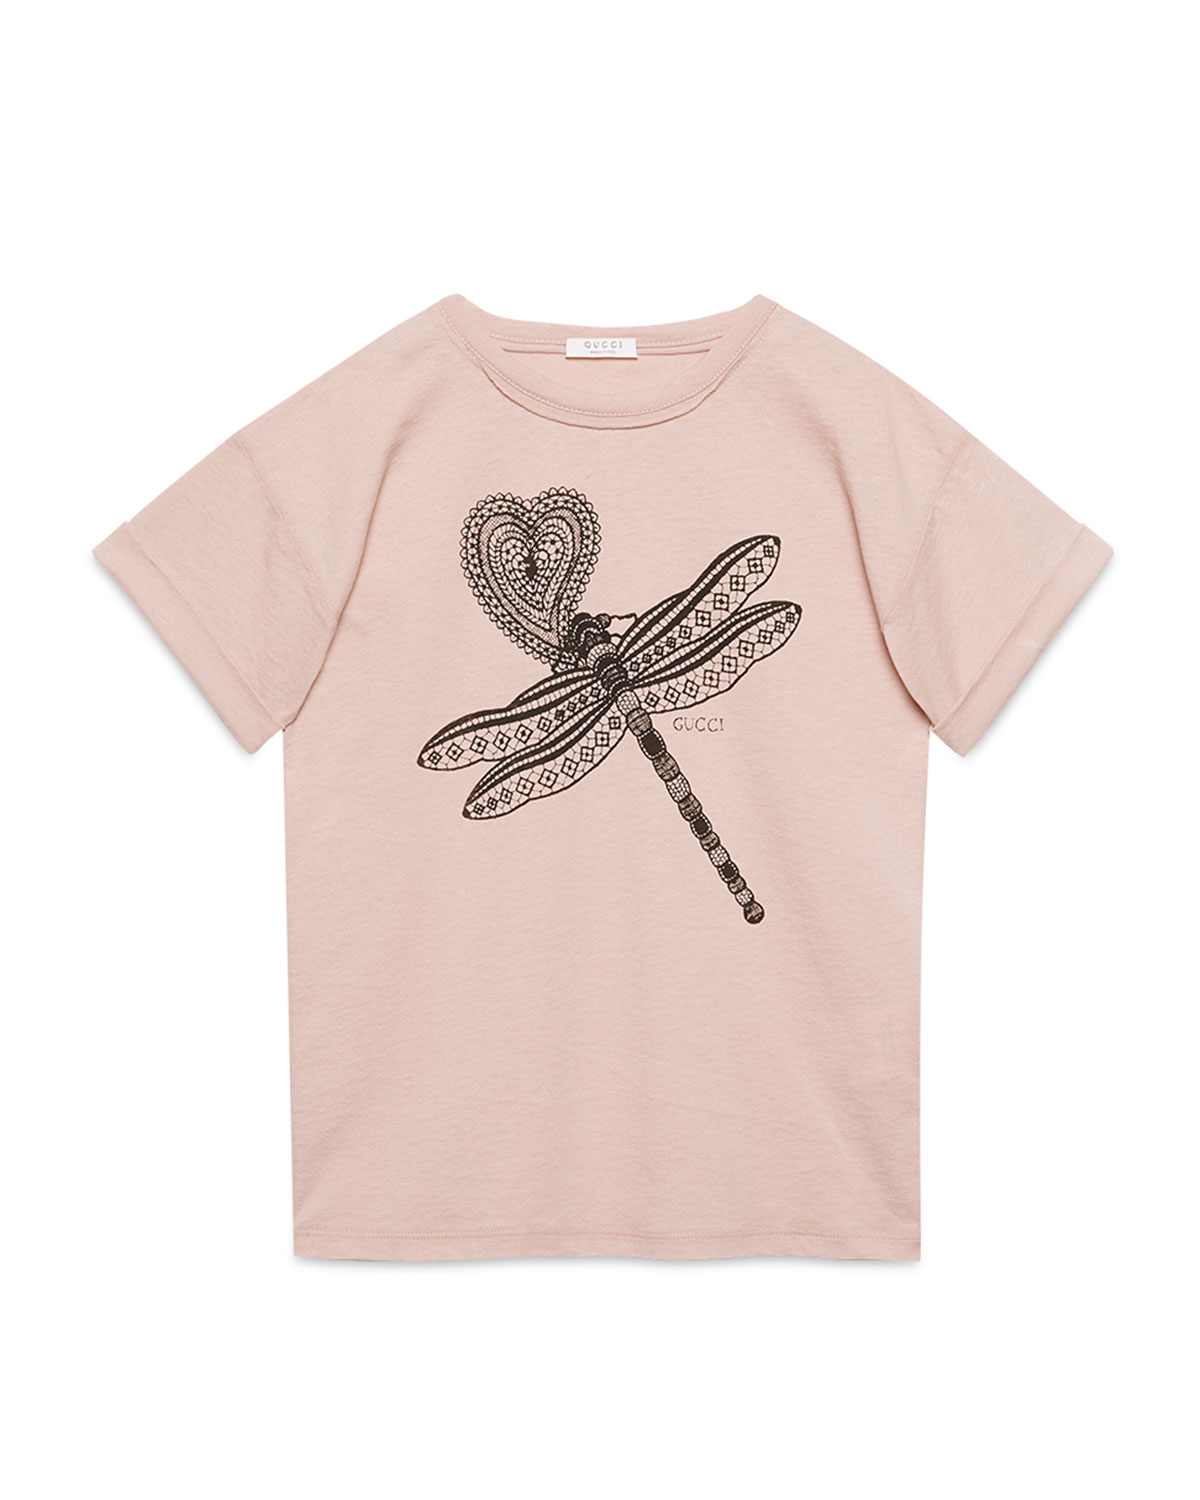 Gucci Oversize Dragonfly Jersey Tee, Pink, Size 8-12, Girl's, Size: 8